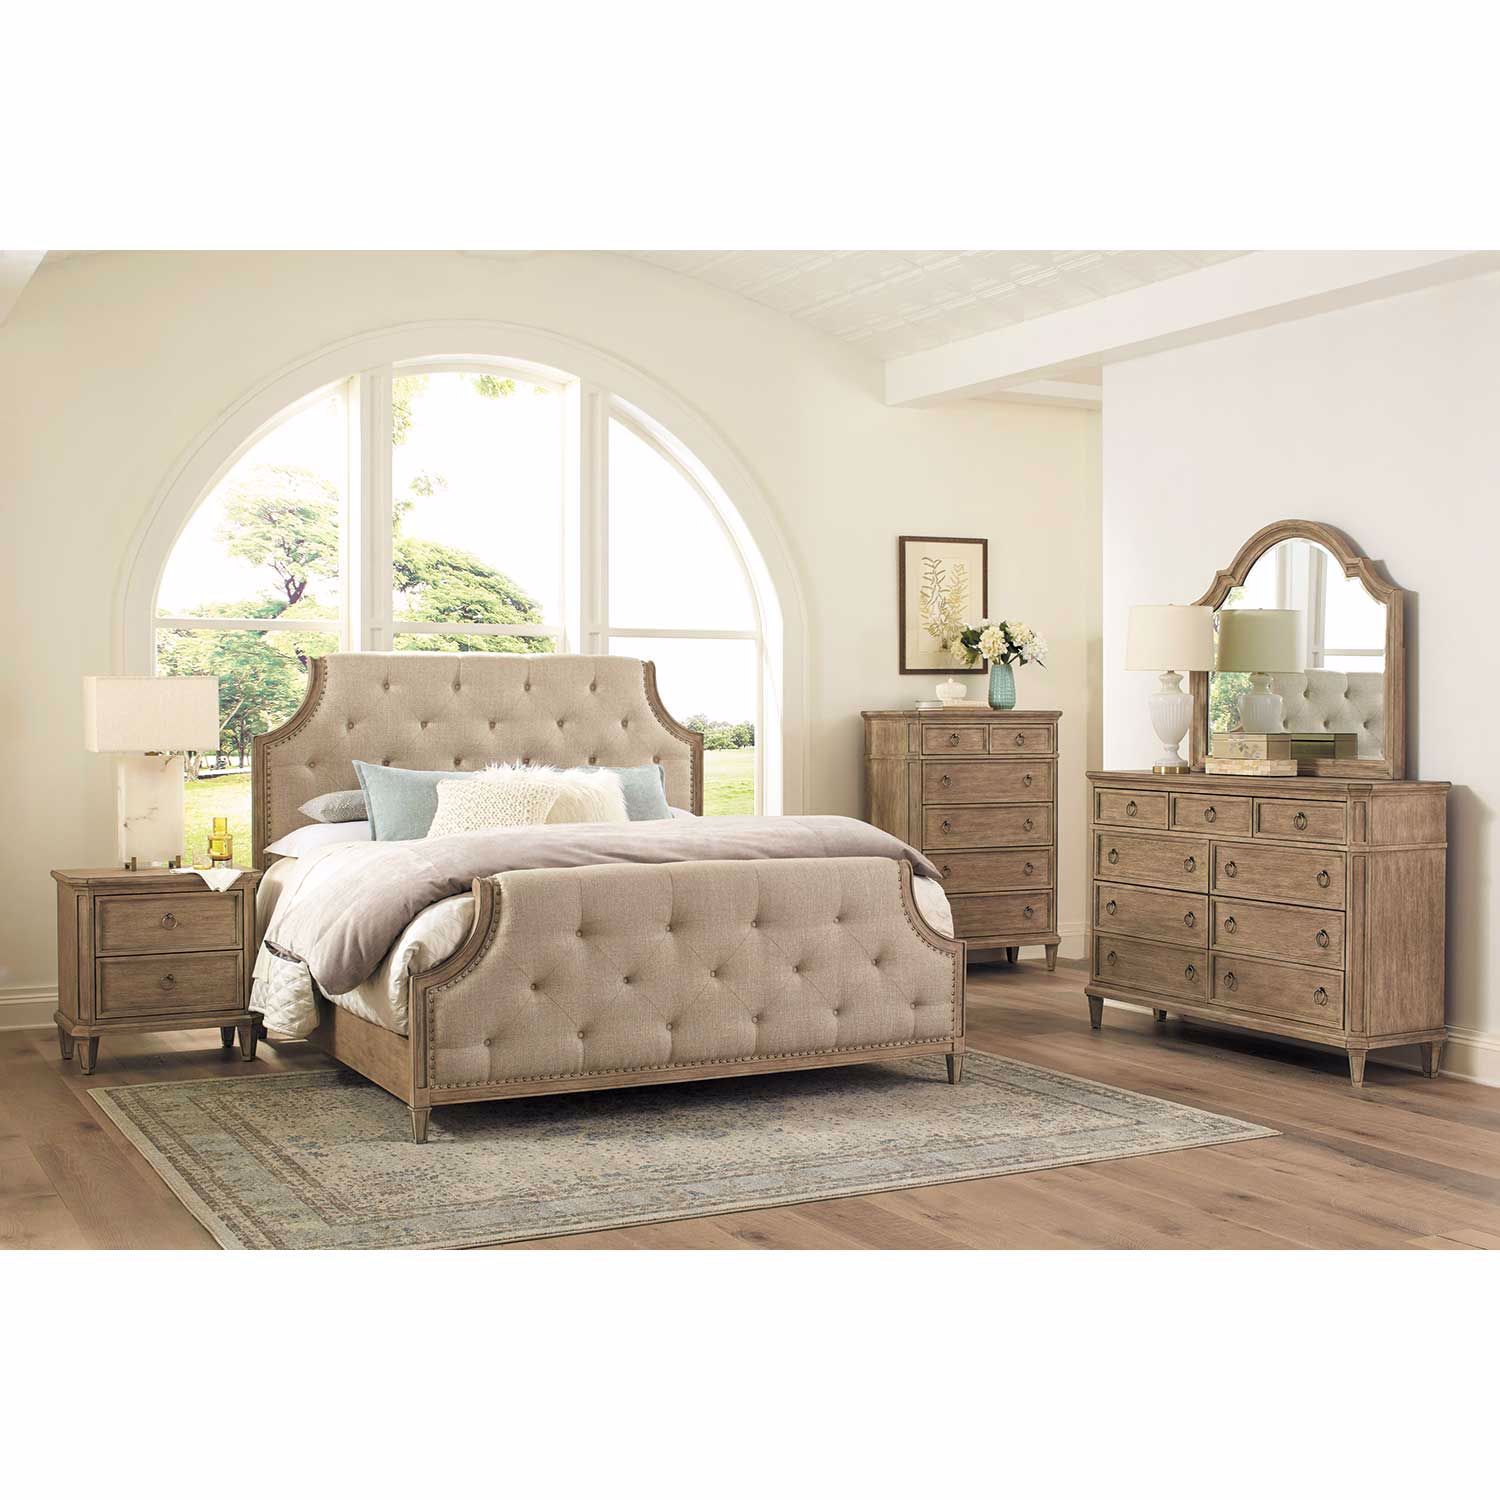 Picture of Tuscany Queen Upholstered Panel Bed